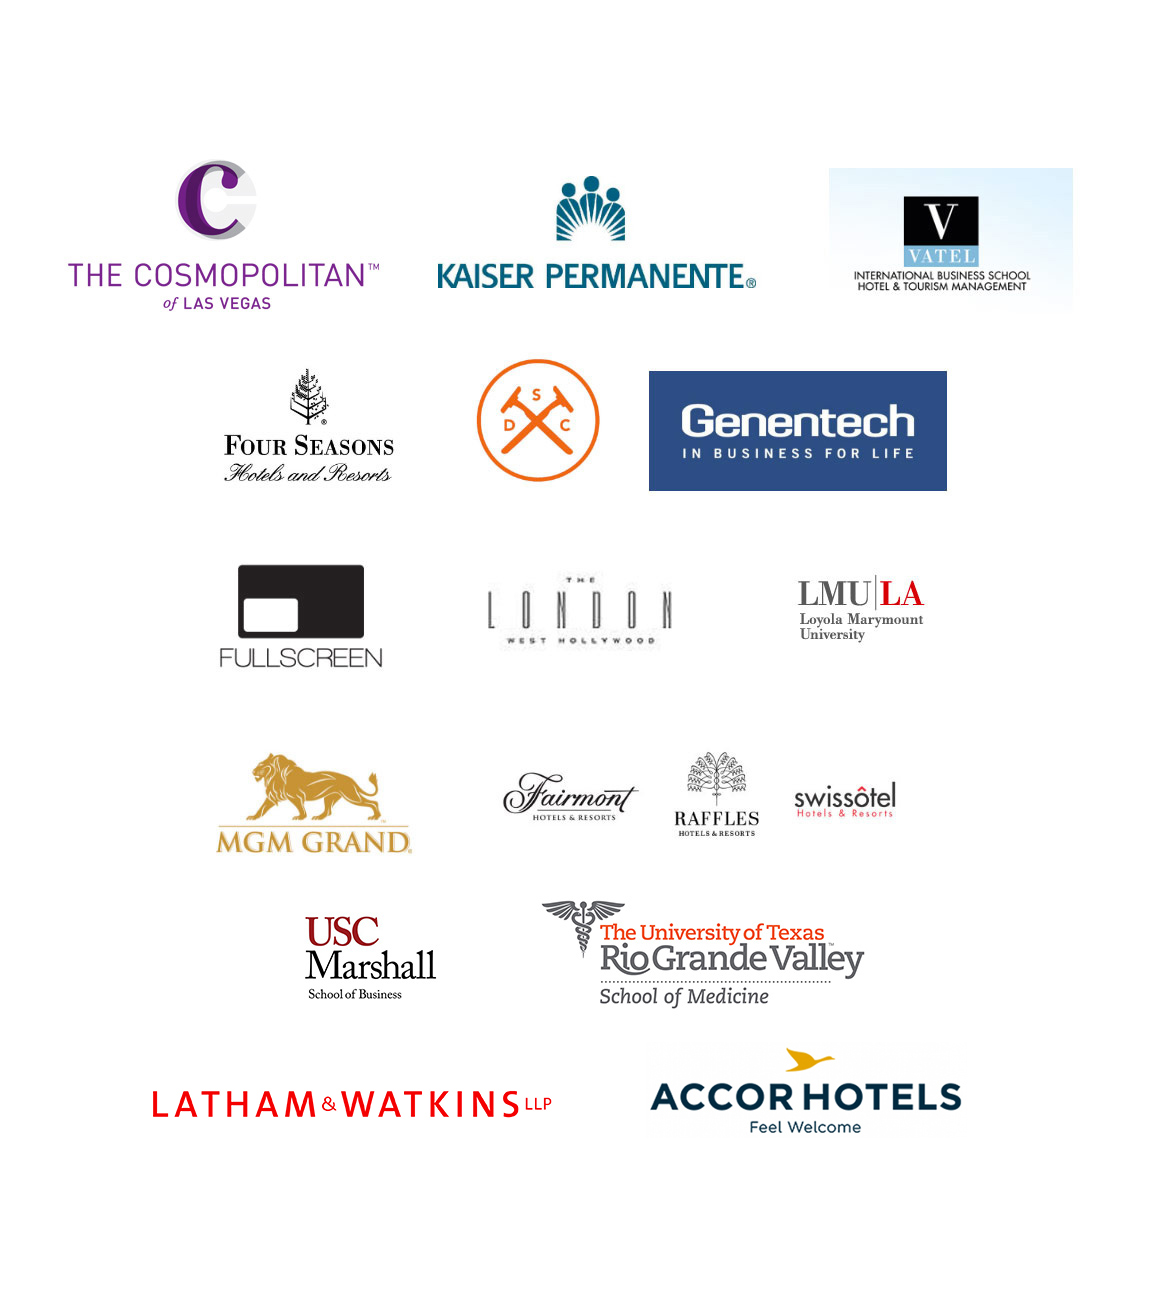 Company logos: The Cosmopolitan of Vegas, Kaiser Permanente, Dollar Shave Club and more.